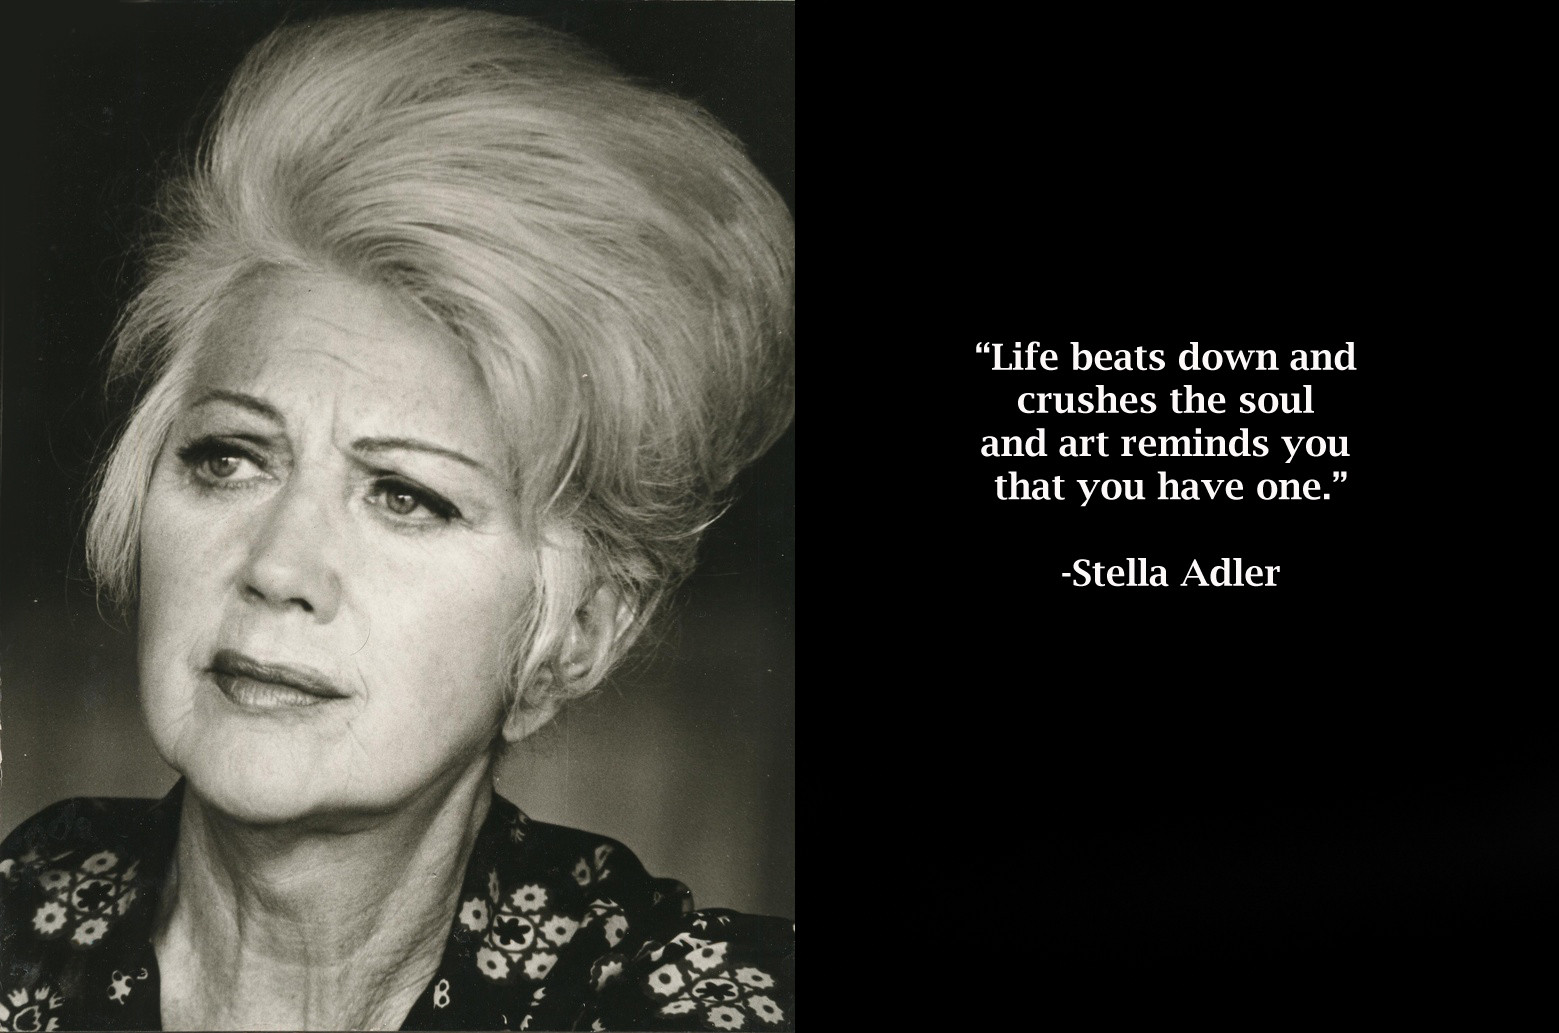 Stella Adler's quote #1